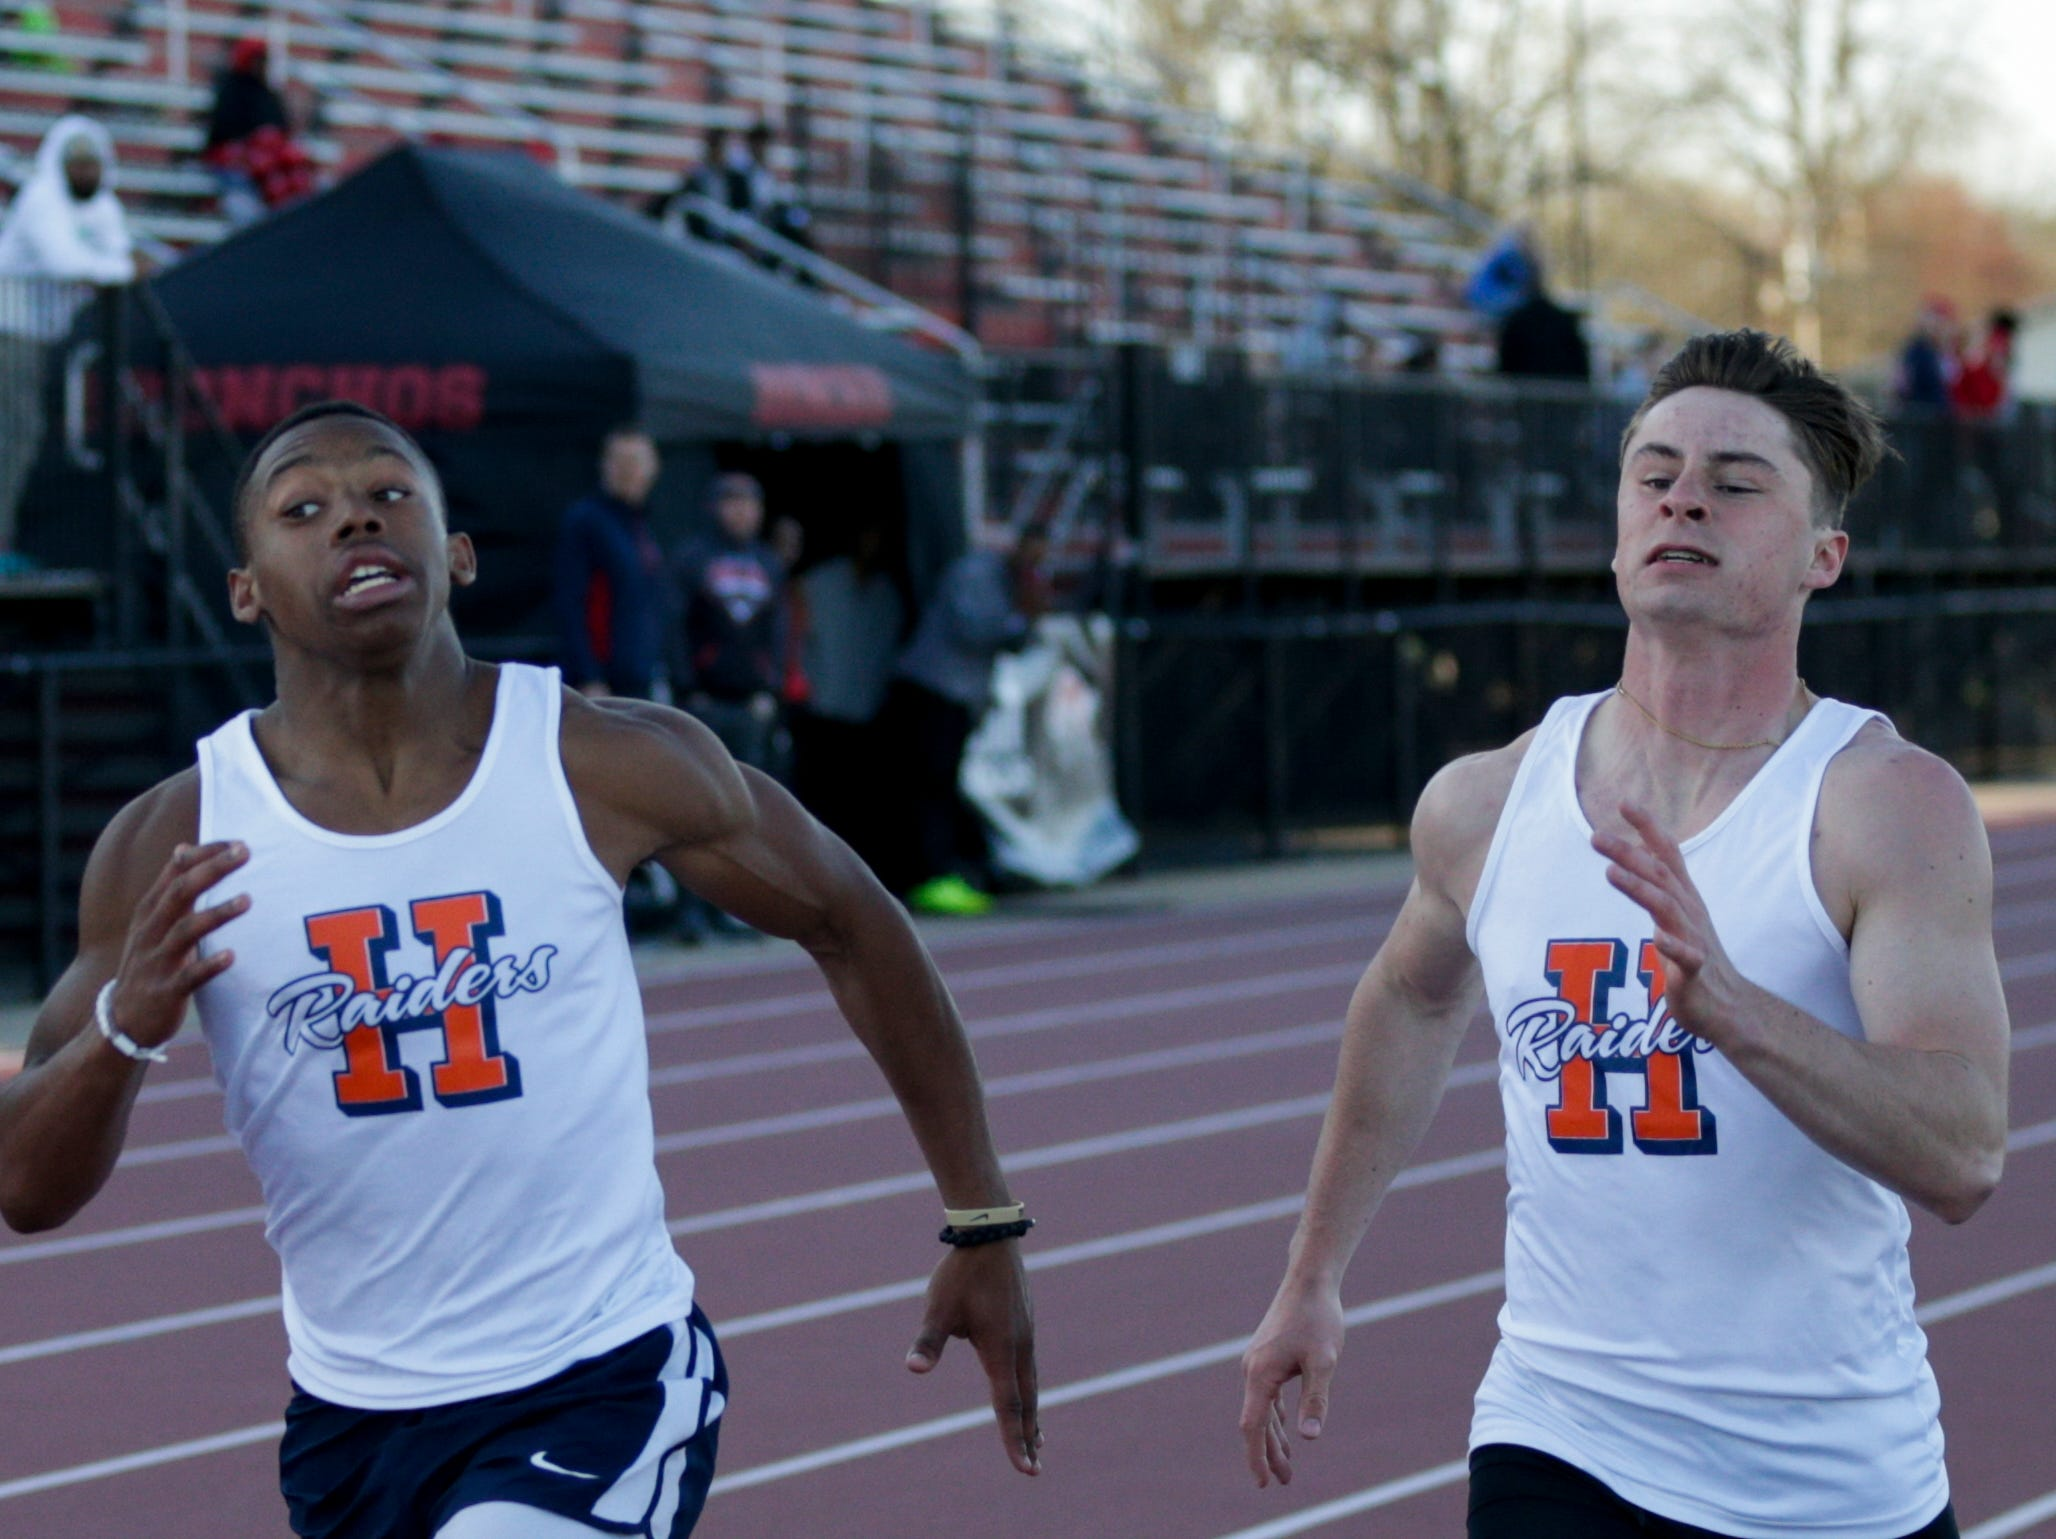 Harrison's Isaiah Armstrong, left, and Stevie Coffing compete in the men's 200 meter dash during the 2019 Sprinters Showcase, Friday, April 12, 2019, at Lafayette Jeff High School in Lafayette.